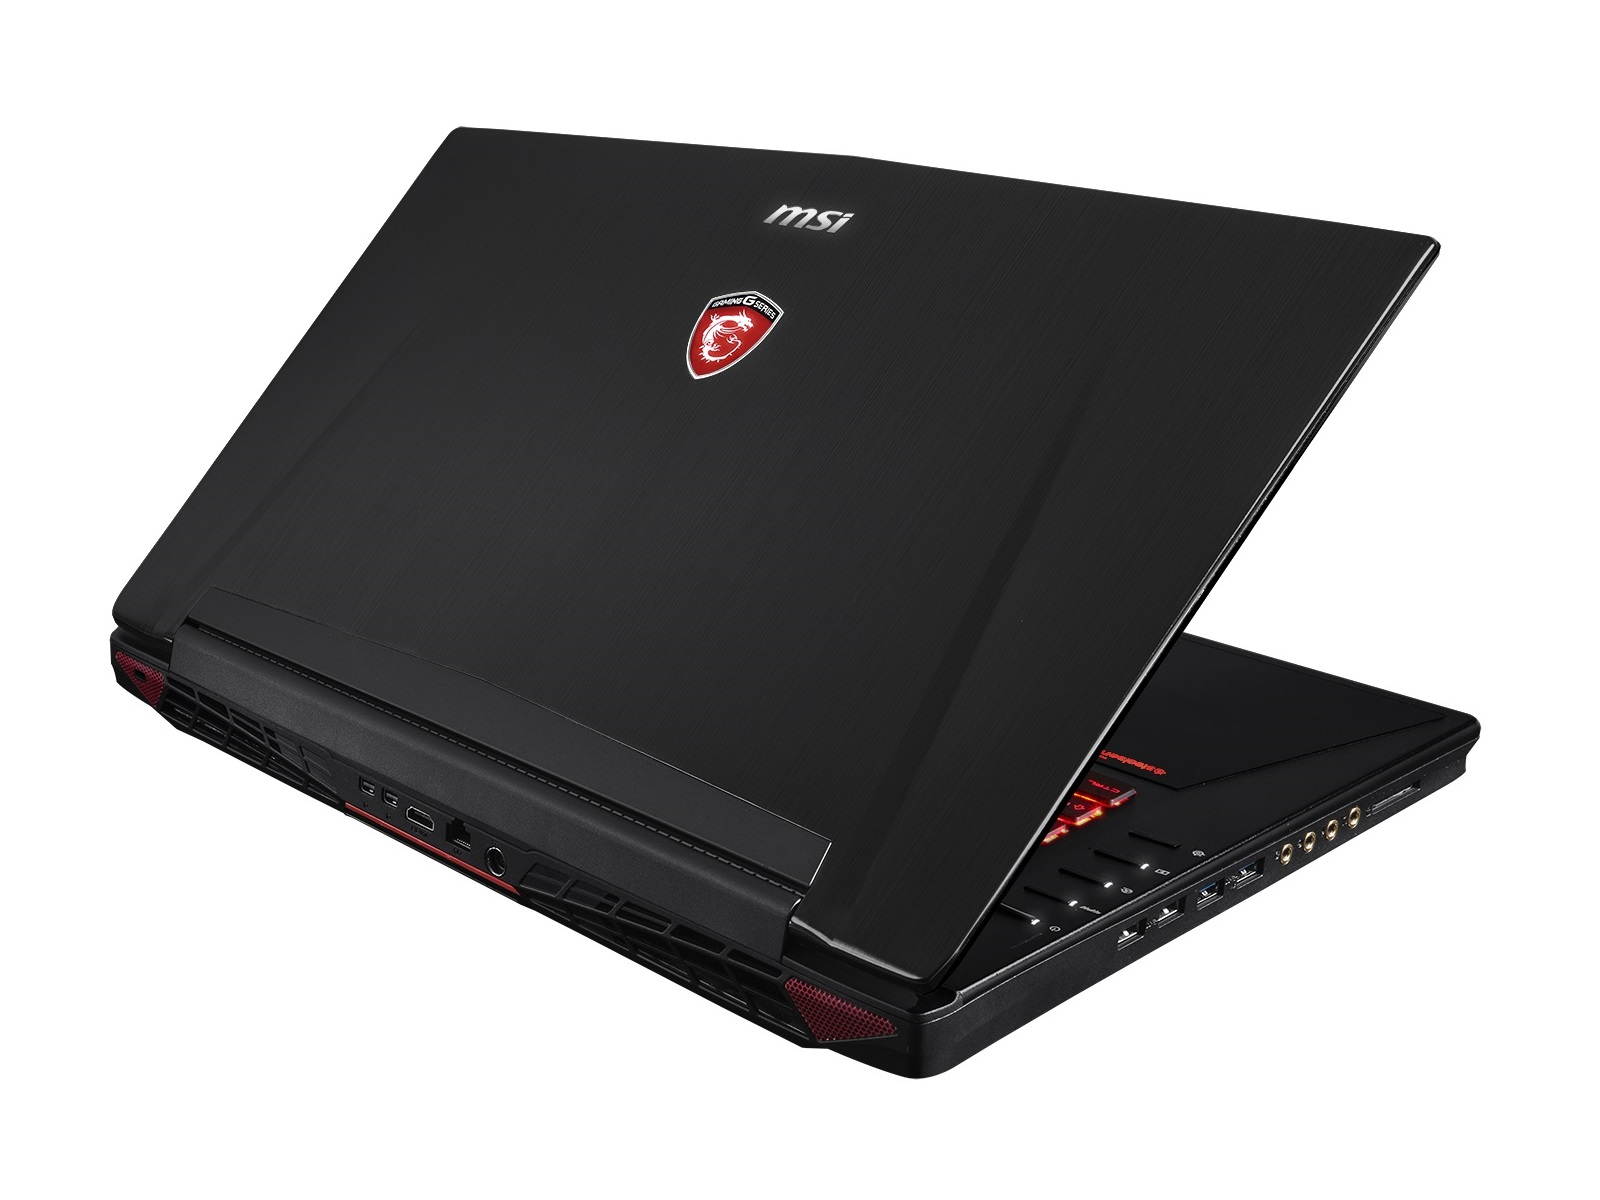 MSI GT60 2QD Dominator 3K Edition Synaptics Touchpad Driver Download